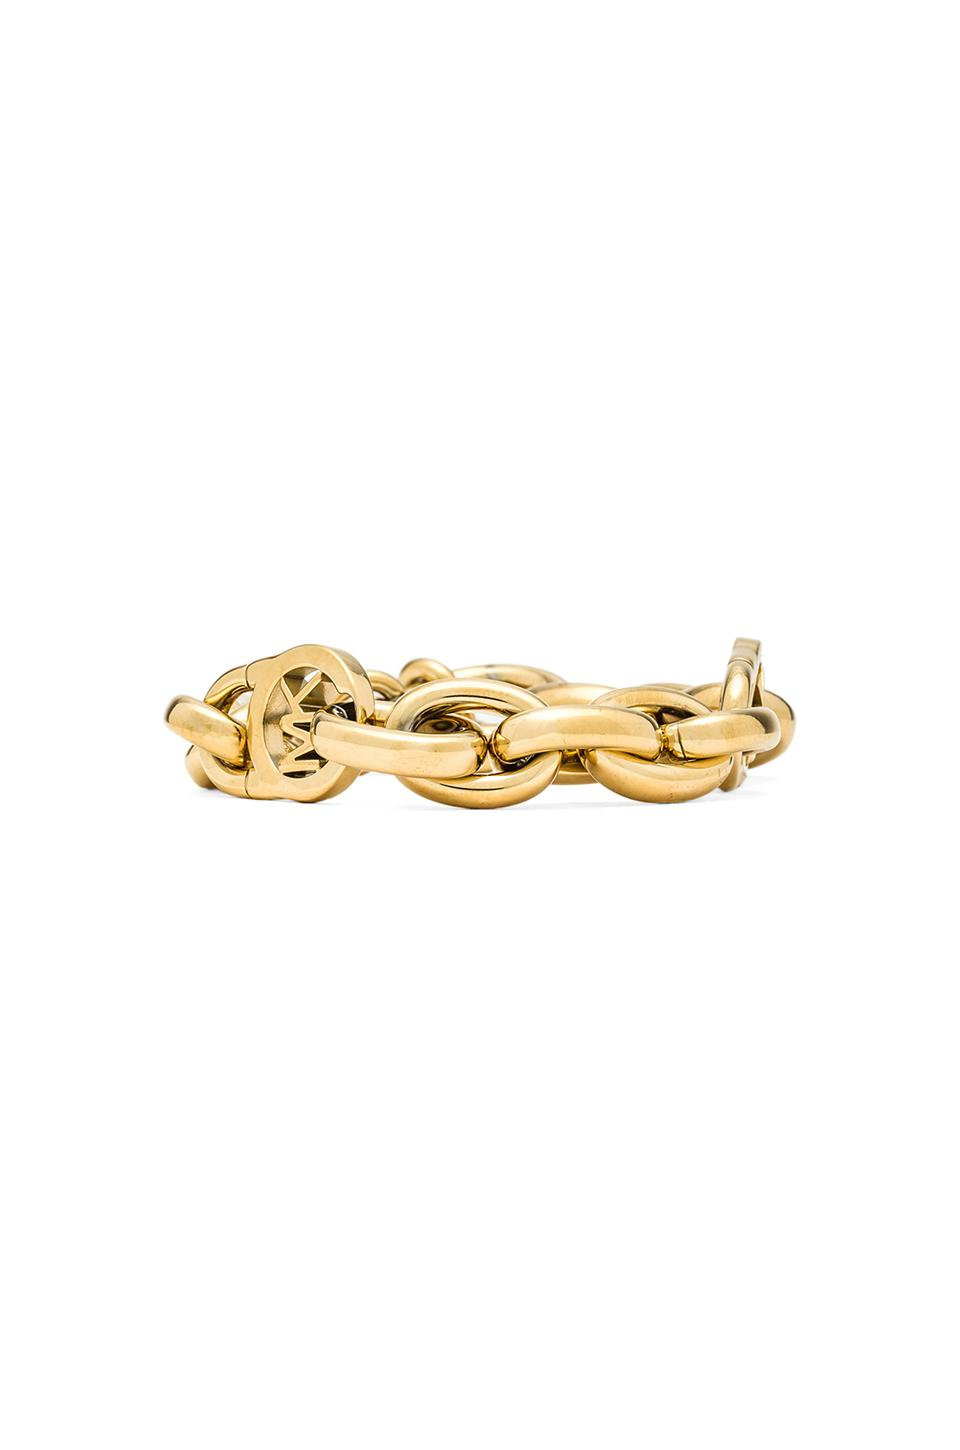 Michael Kors Chain Bracelet in Gold from REVOLVEclothing.com